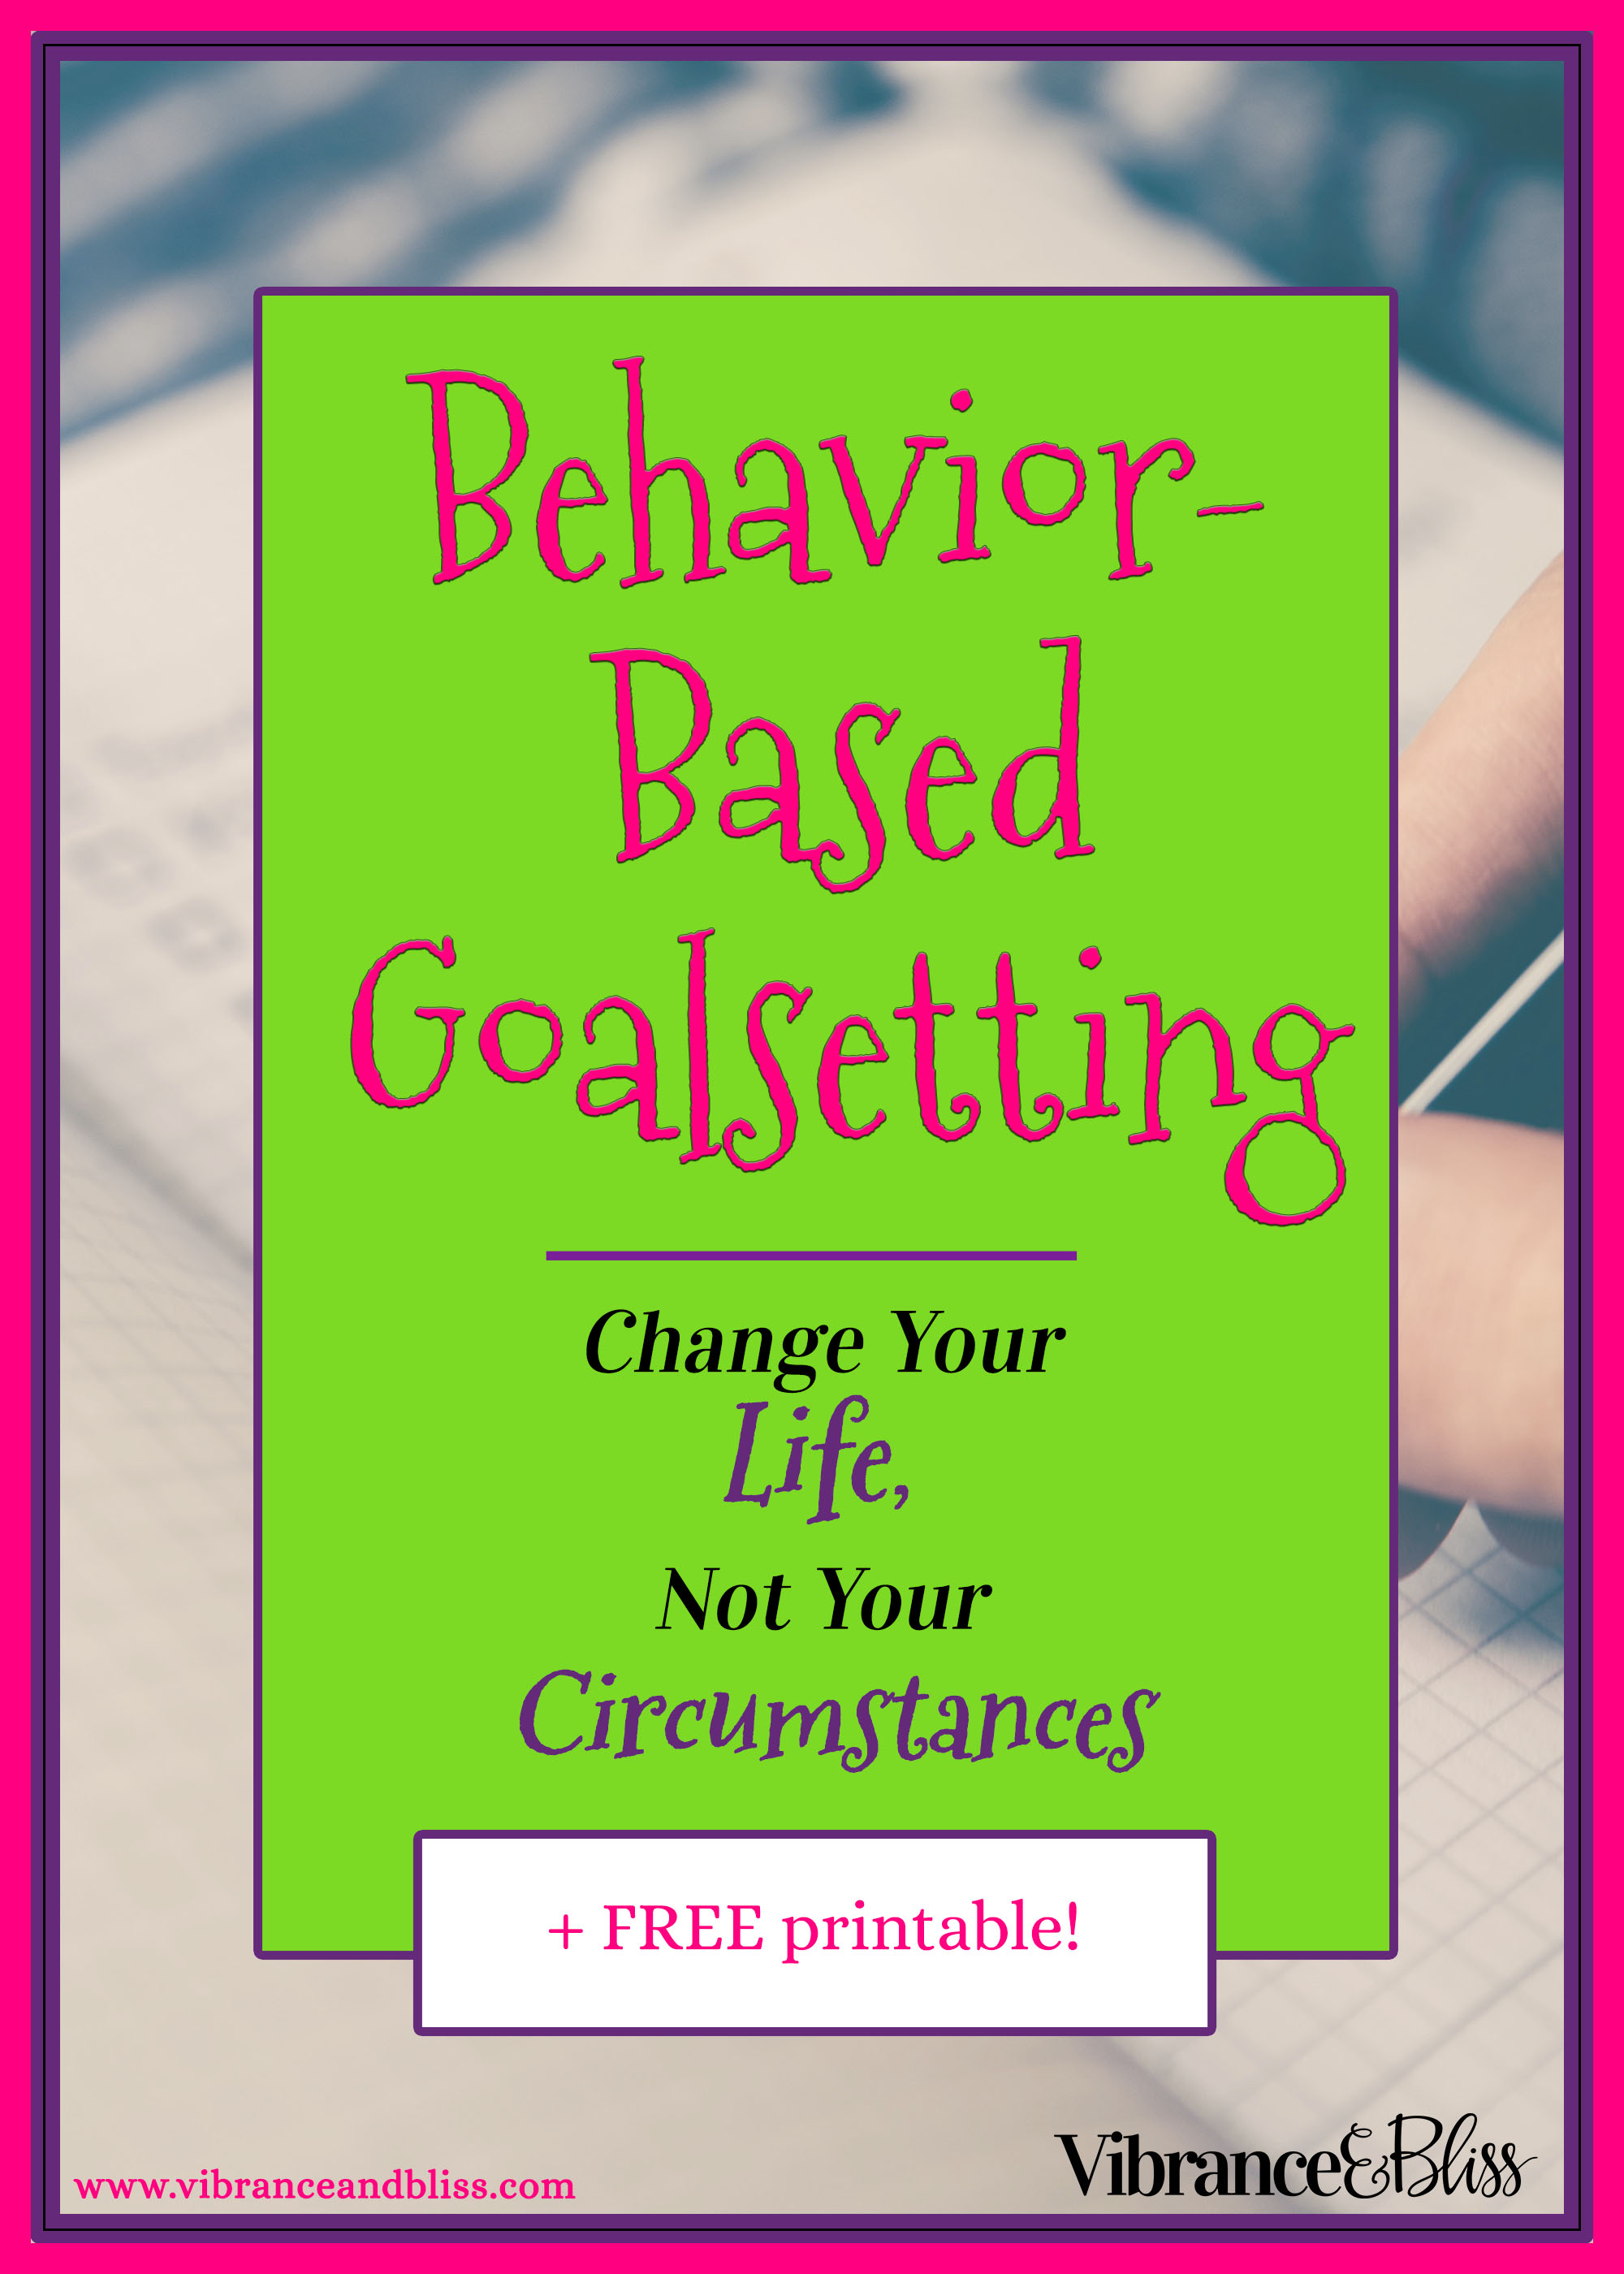 Don't set superficial goals- set goals that will stretch you & help you progress. Set goals that are going to change your behavior and your life.